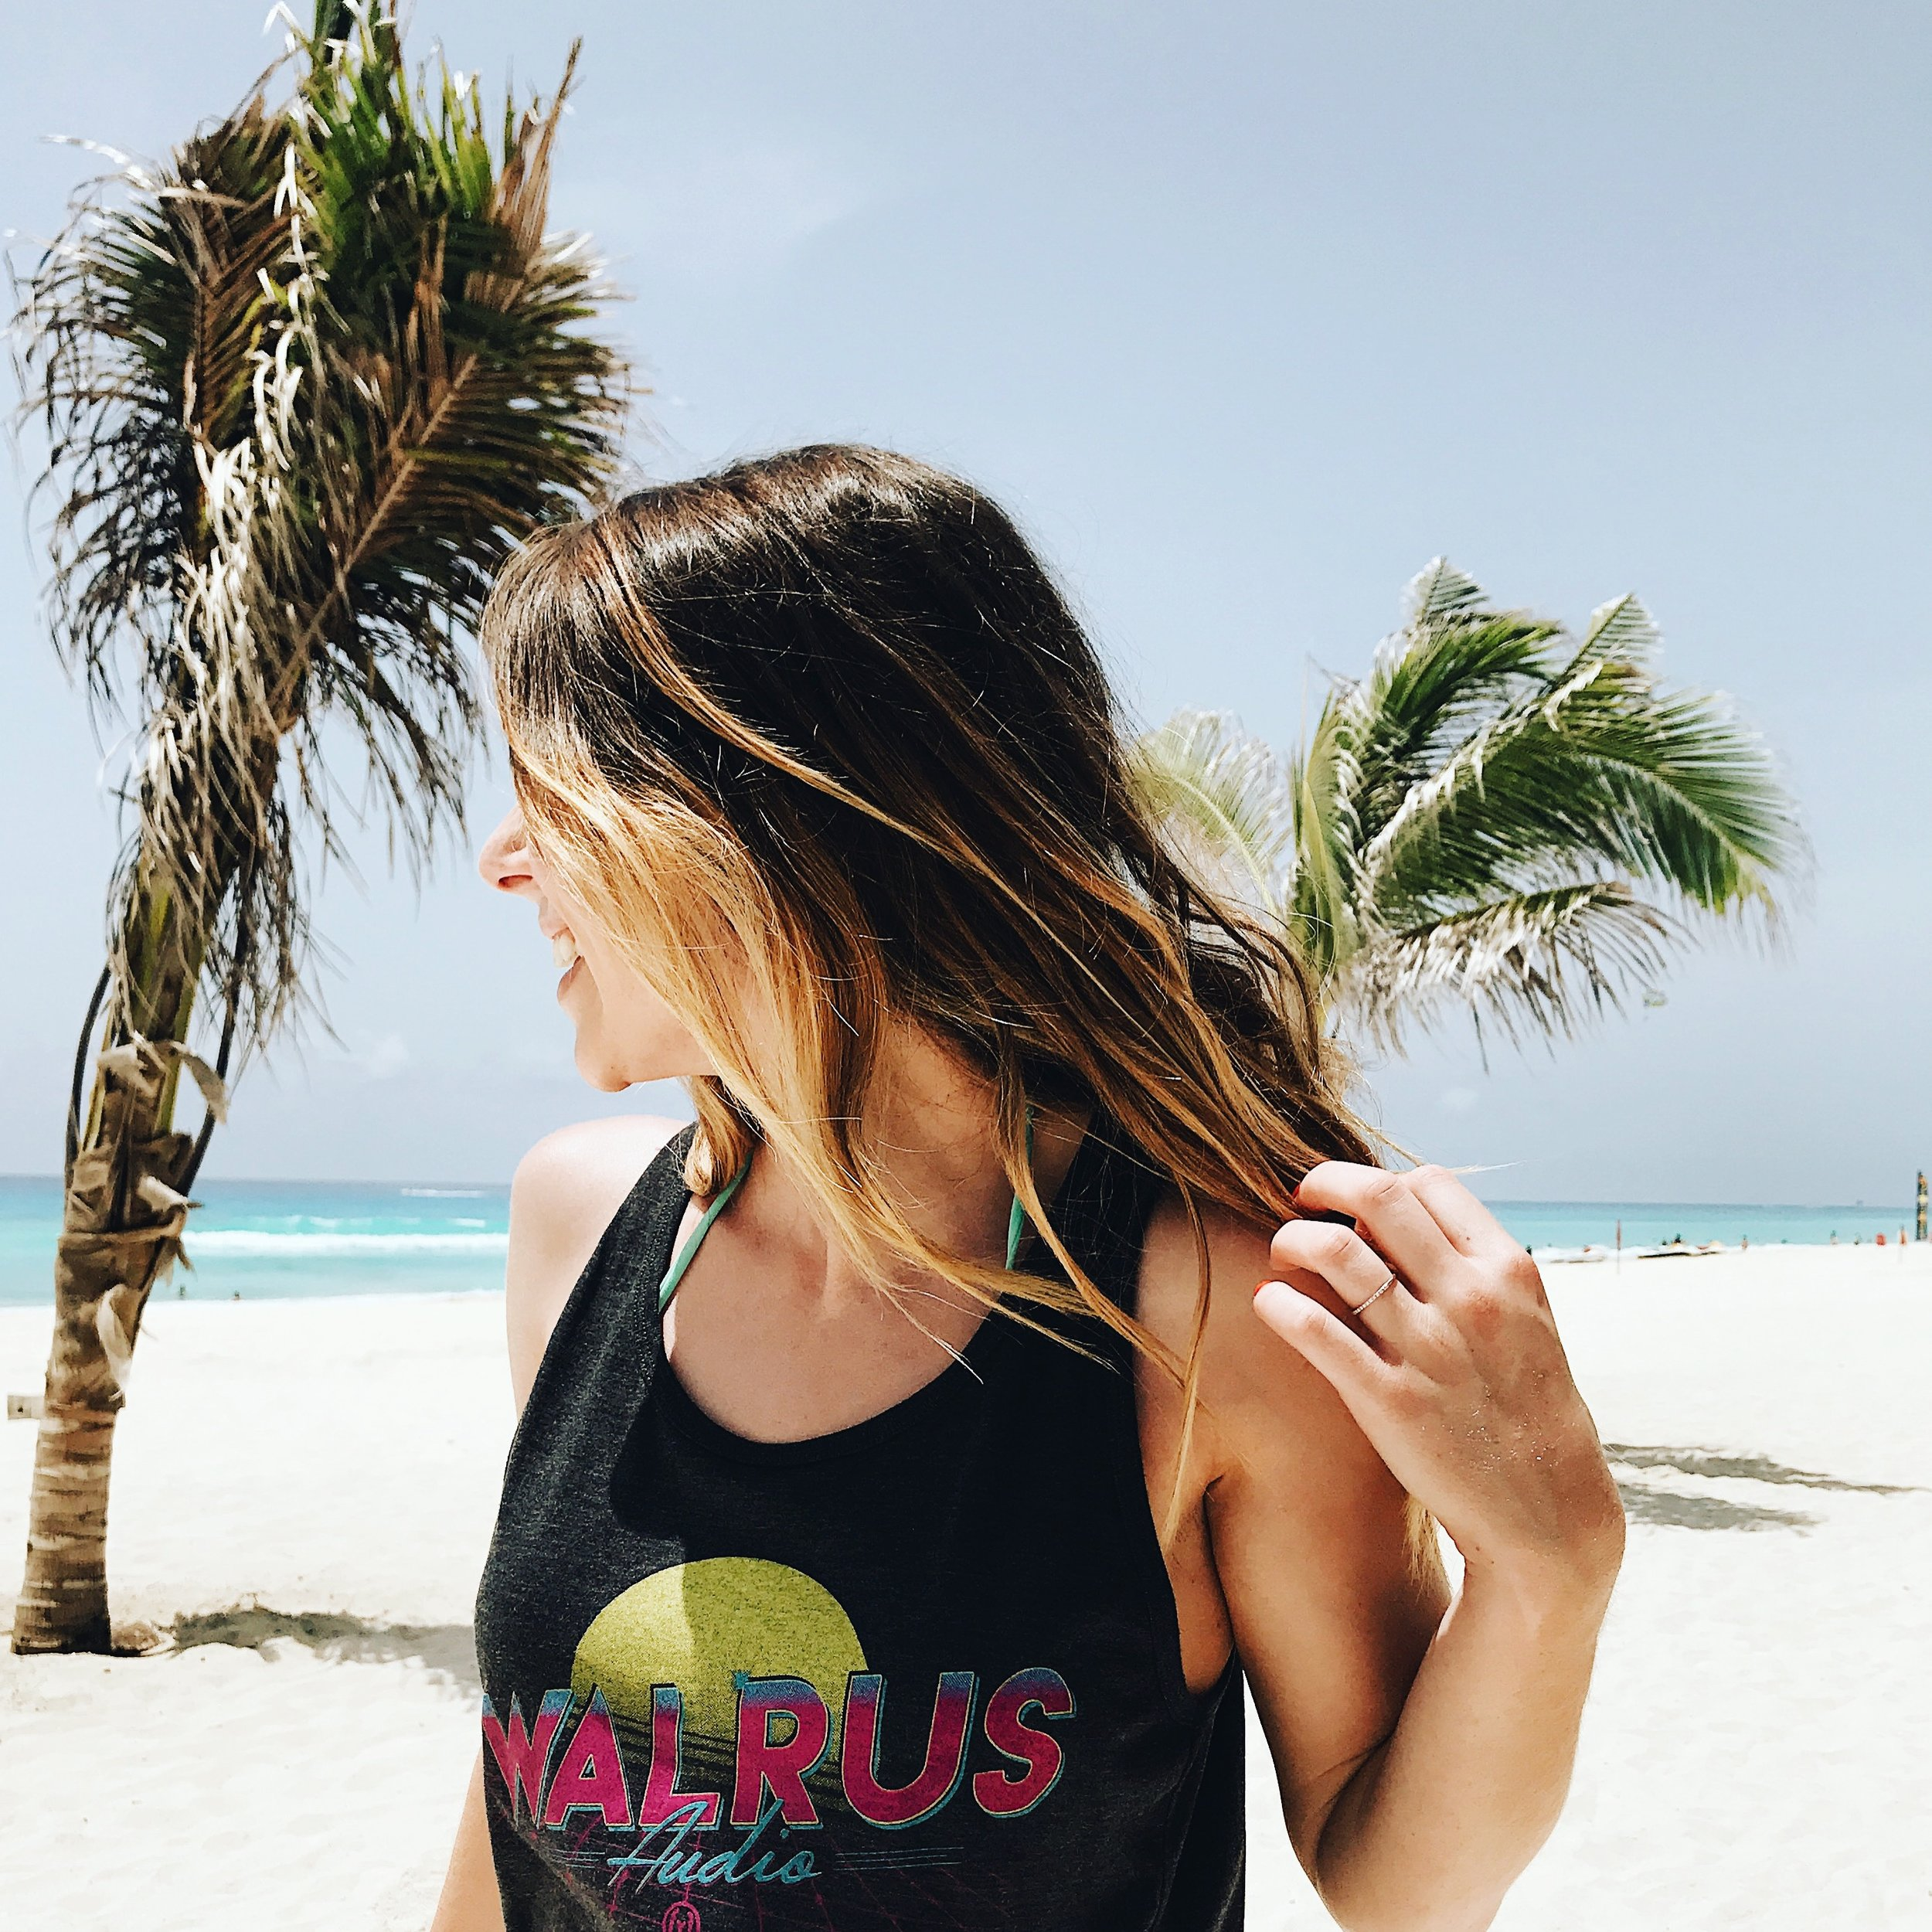 Love this beachy tank from Walrus!